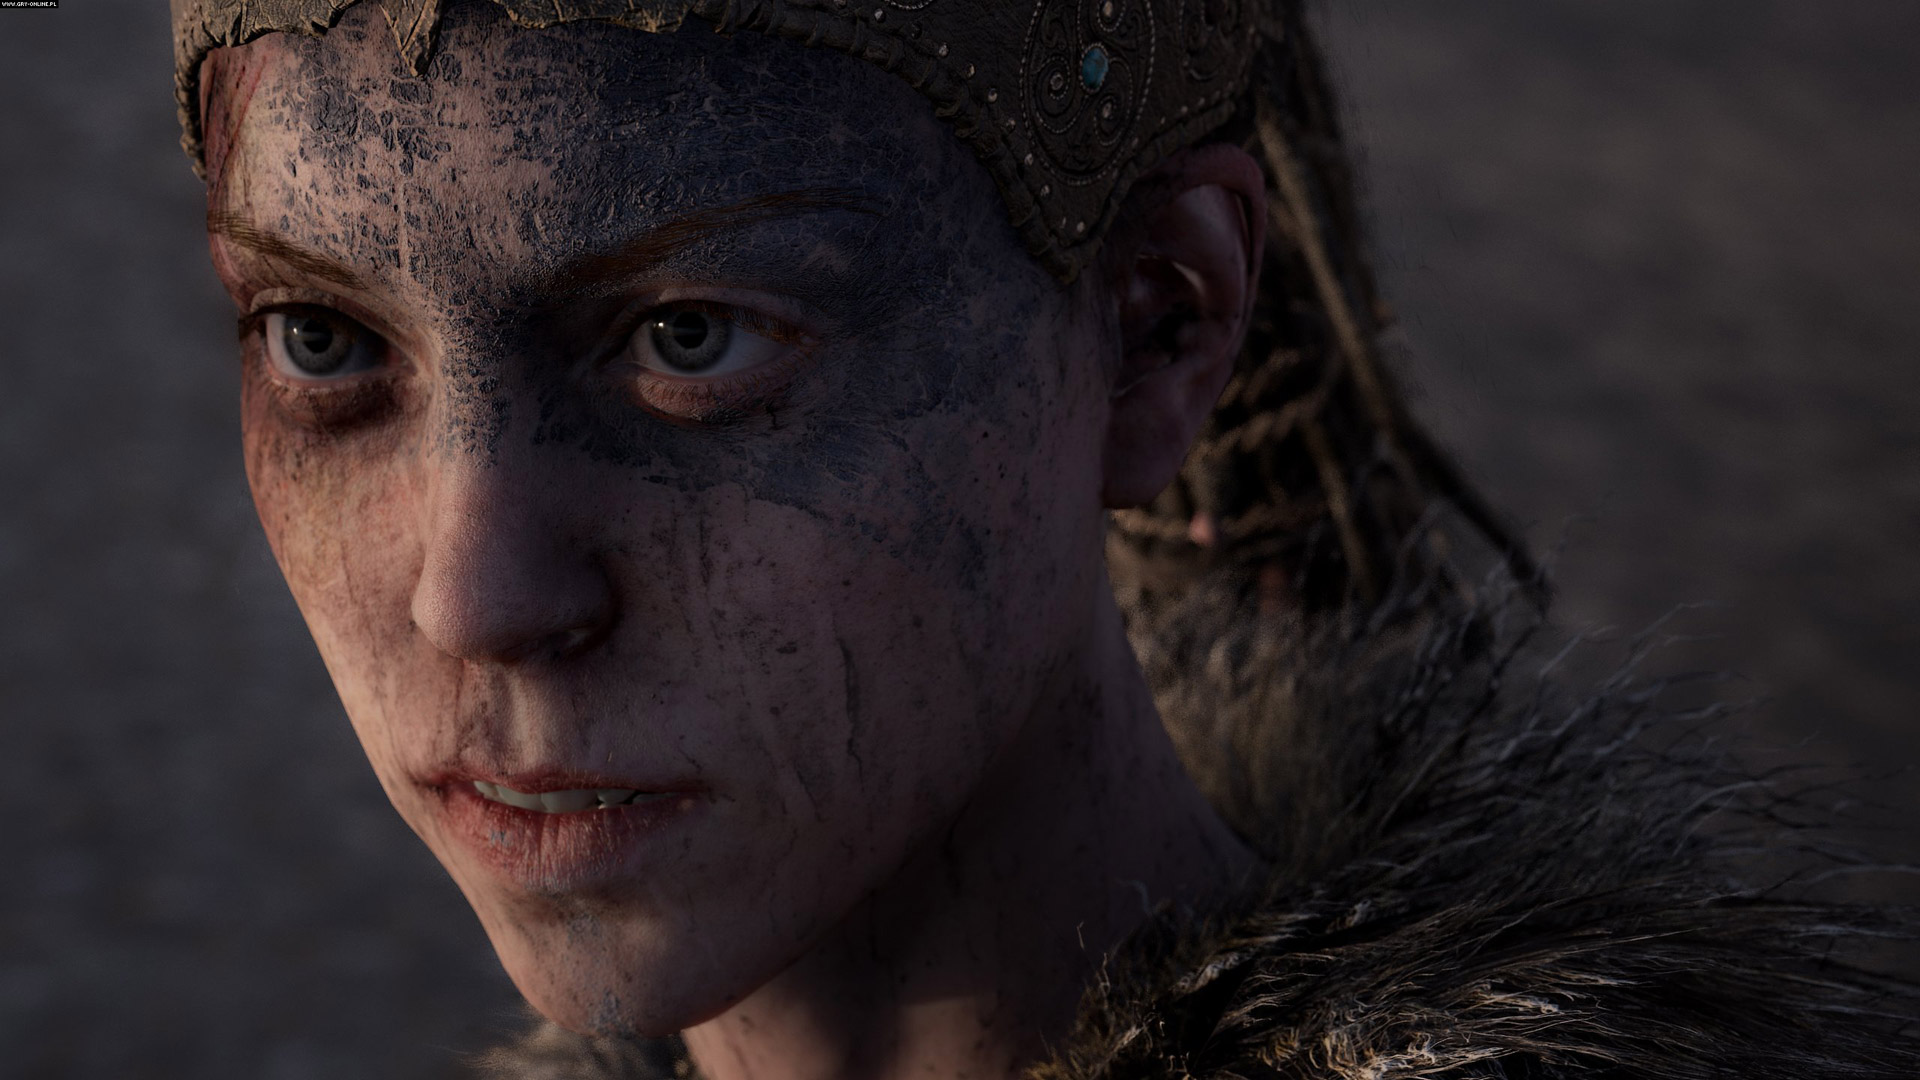 Free Hellblade: Senua's Sacrifice Wallpaper in 1920x1080